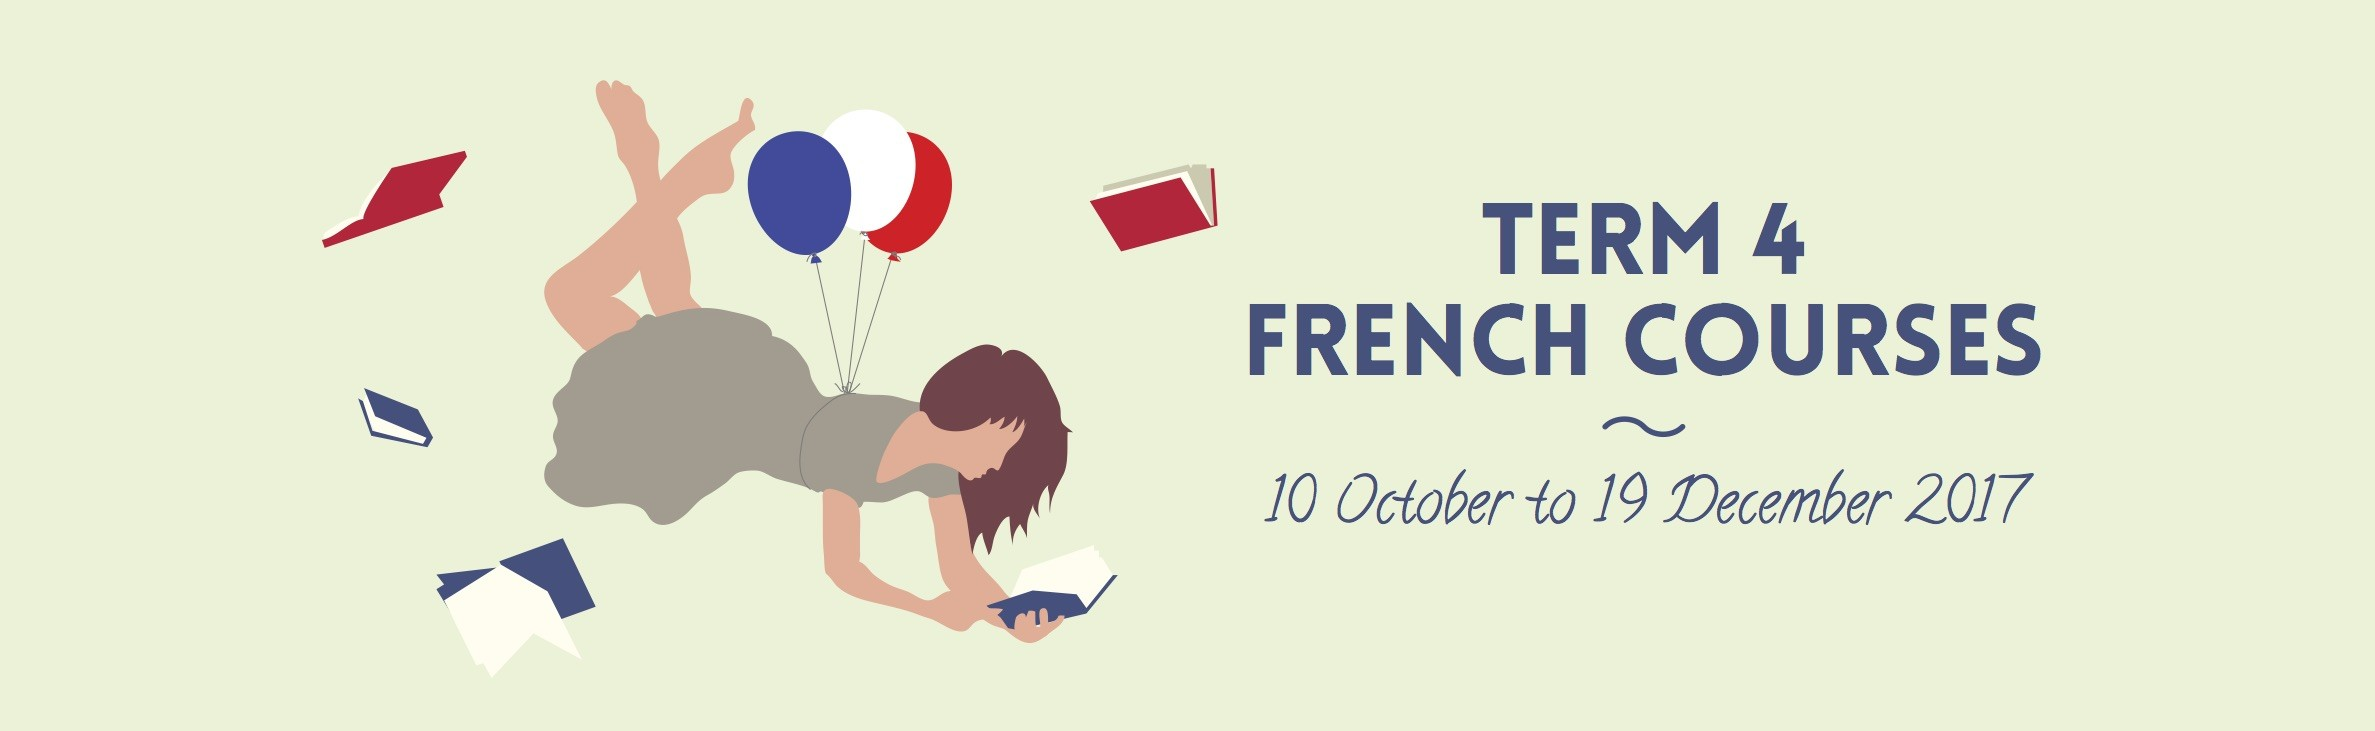 Term 4 French courses